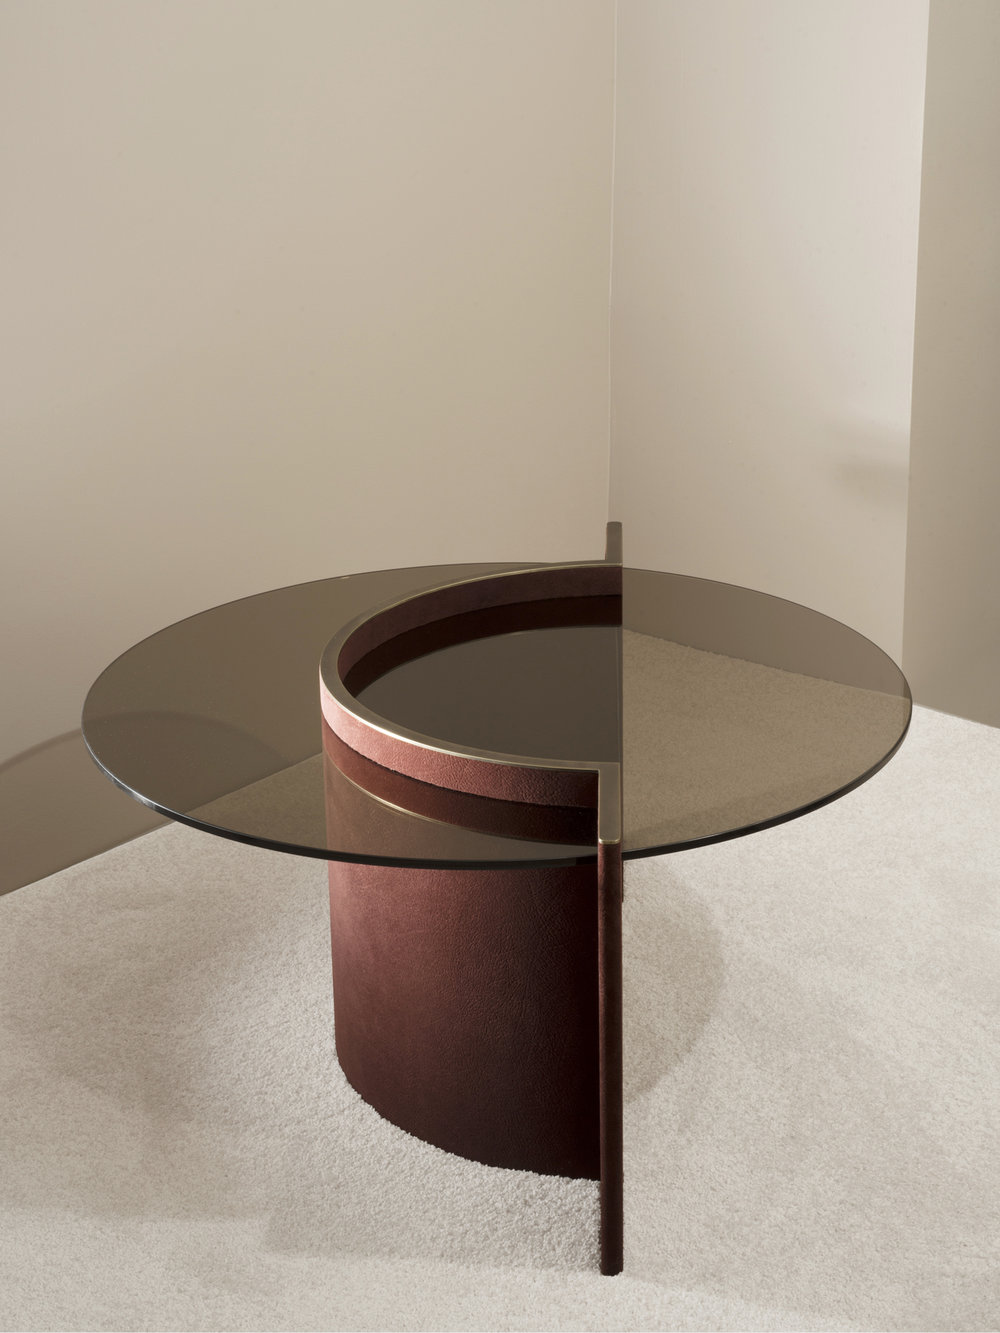 Robert Sukrachand | Table